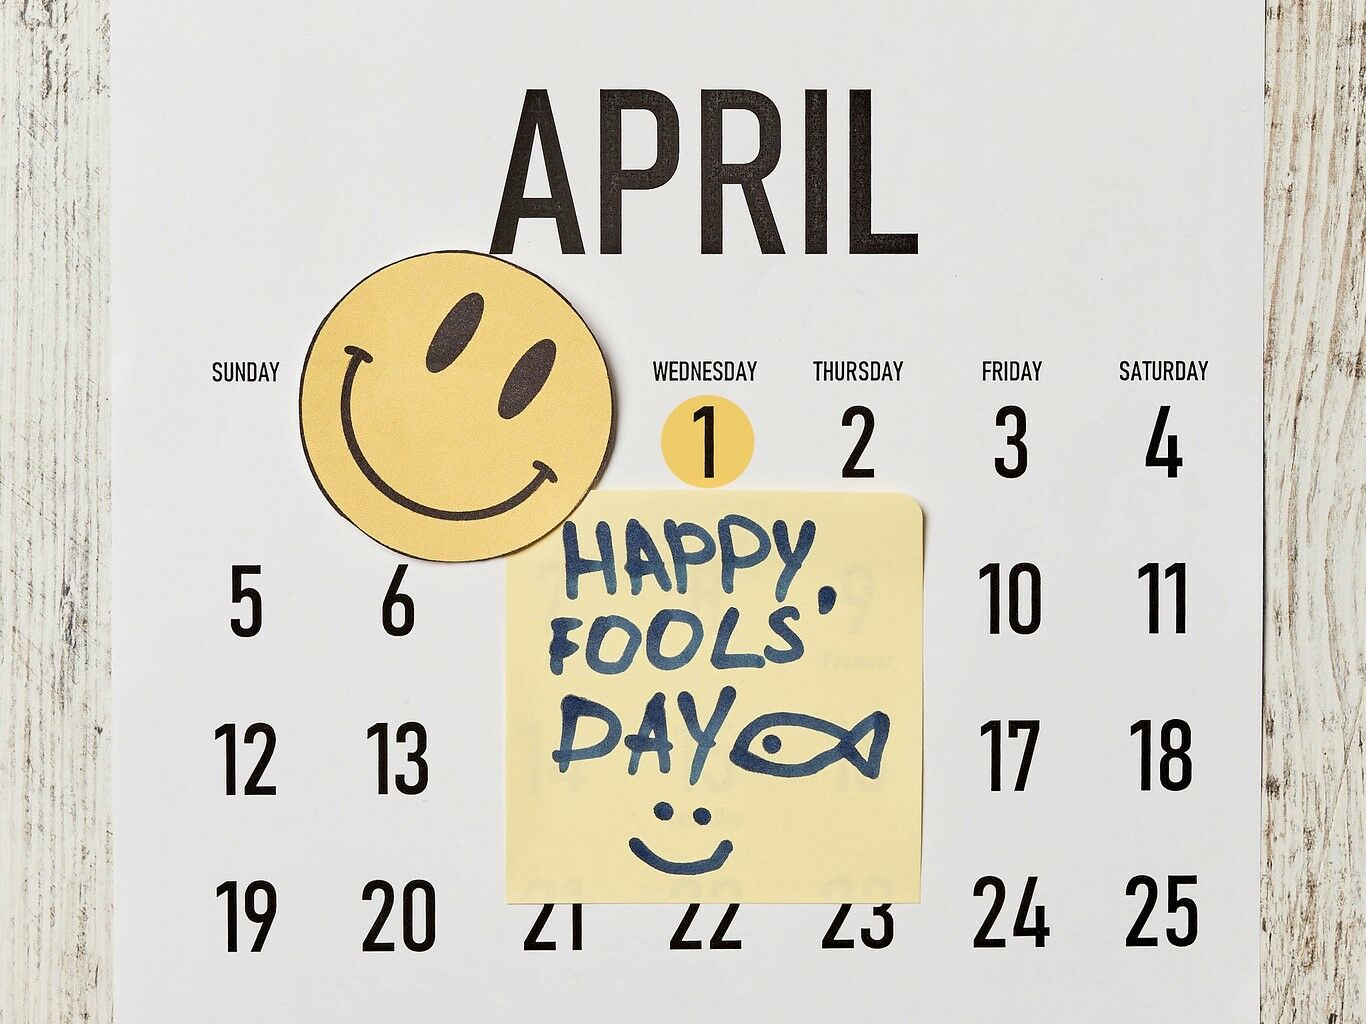 April Fool's jokes posted online could land you in Thai jail, police warn | Thaiger